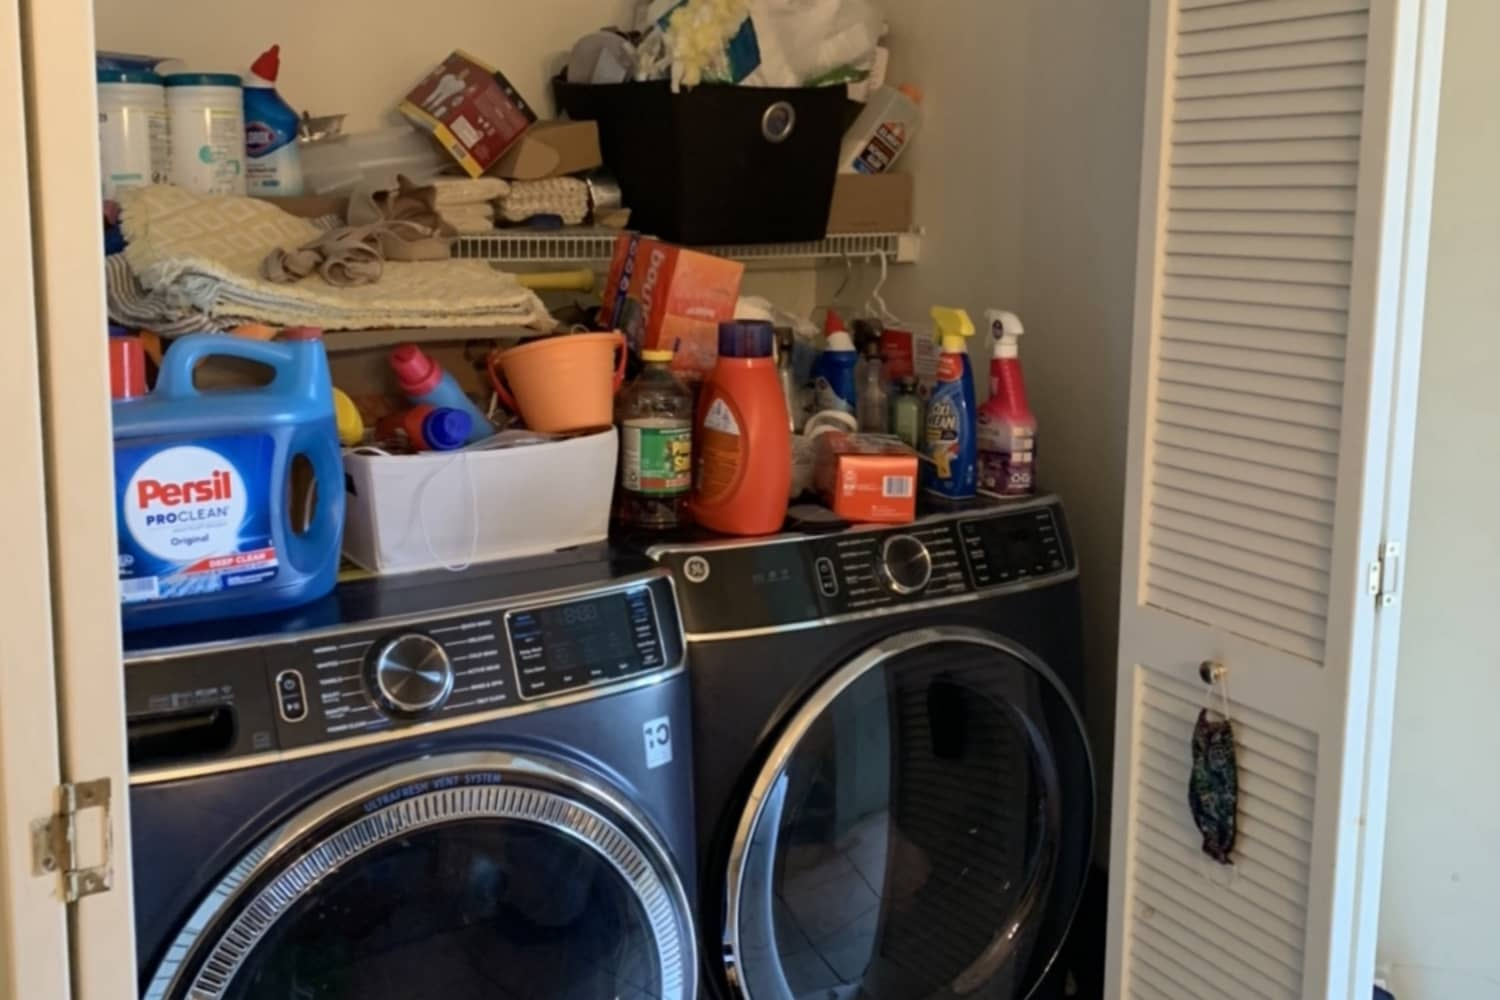 Before and After: A Few Small Changes Kick this Cluttered Laundry Zone into High Gear